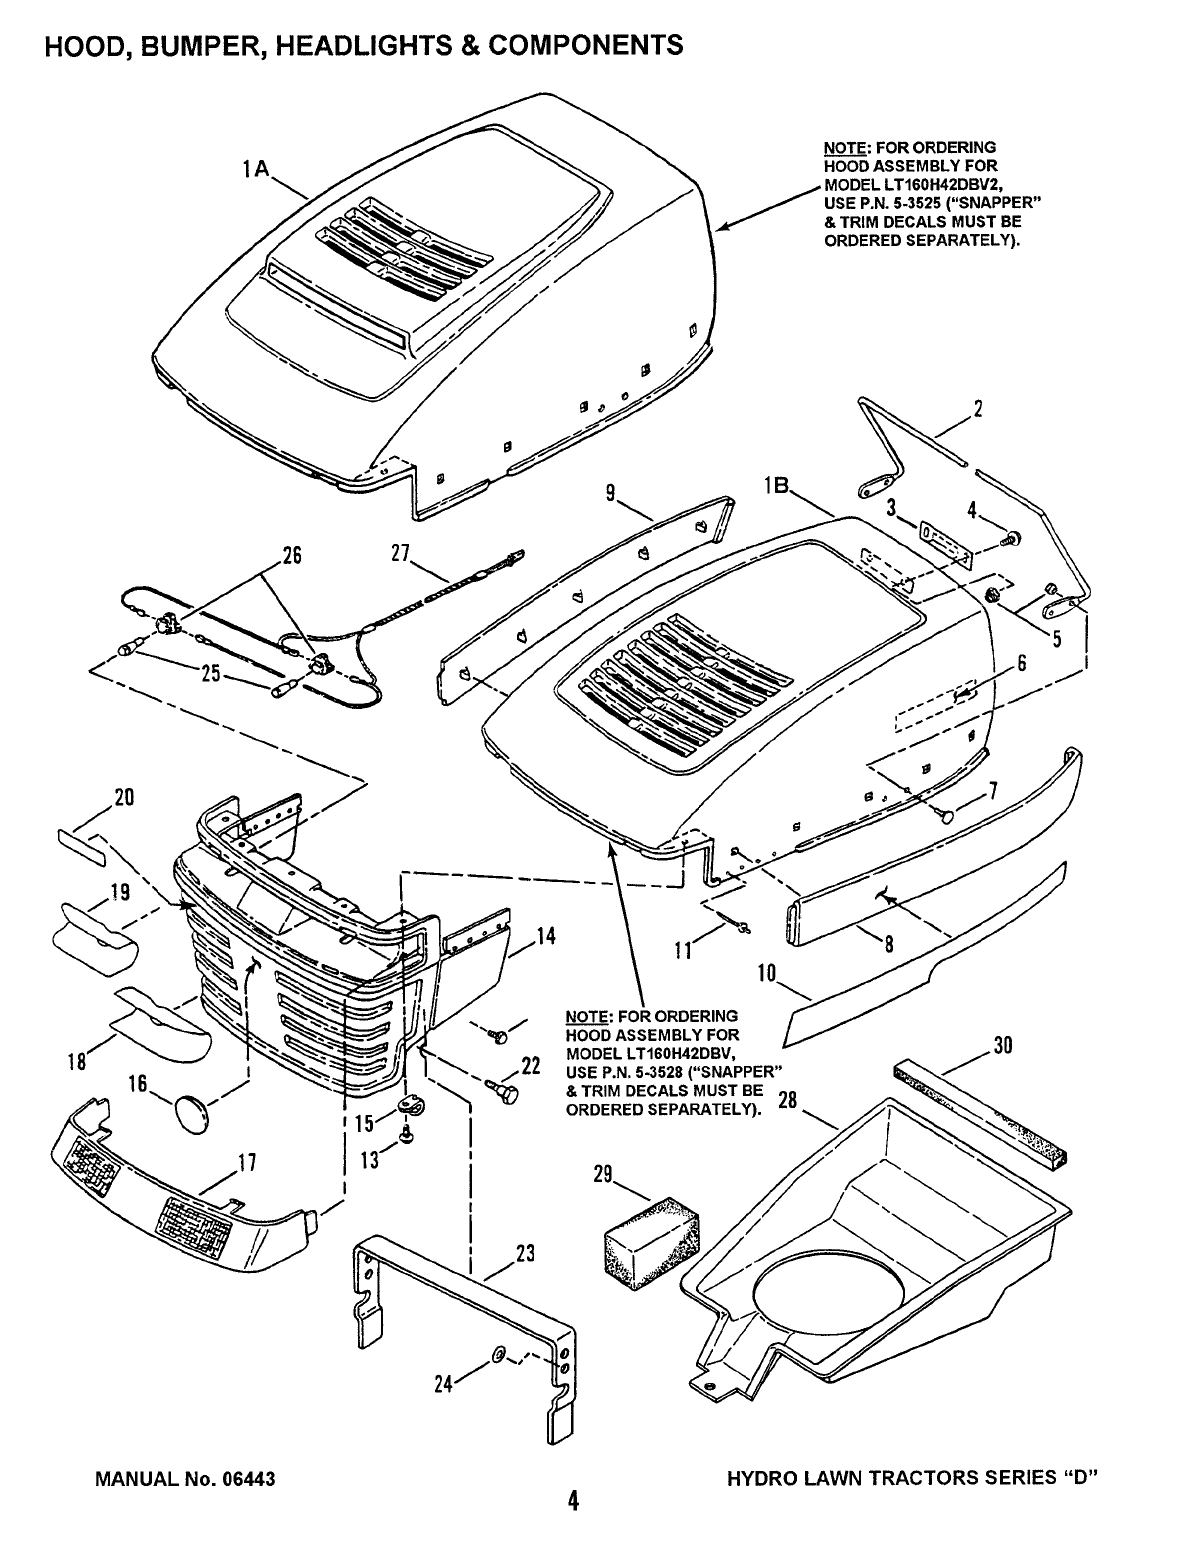 Page 4 of Snapper Lawn Mower LT160H42dbv2 User Guide